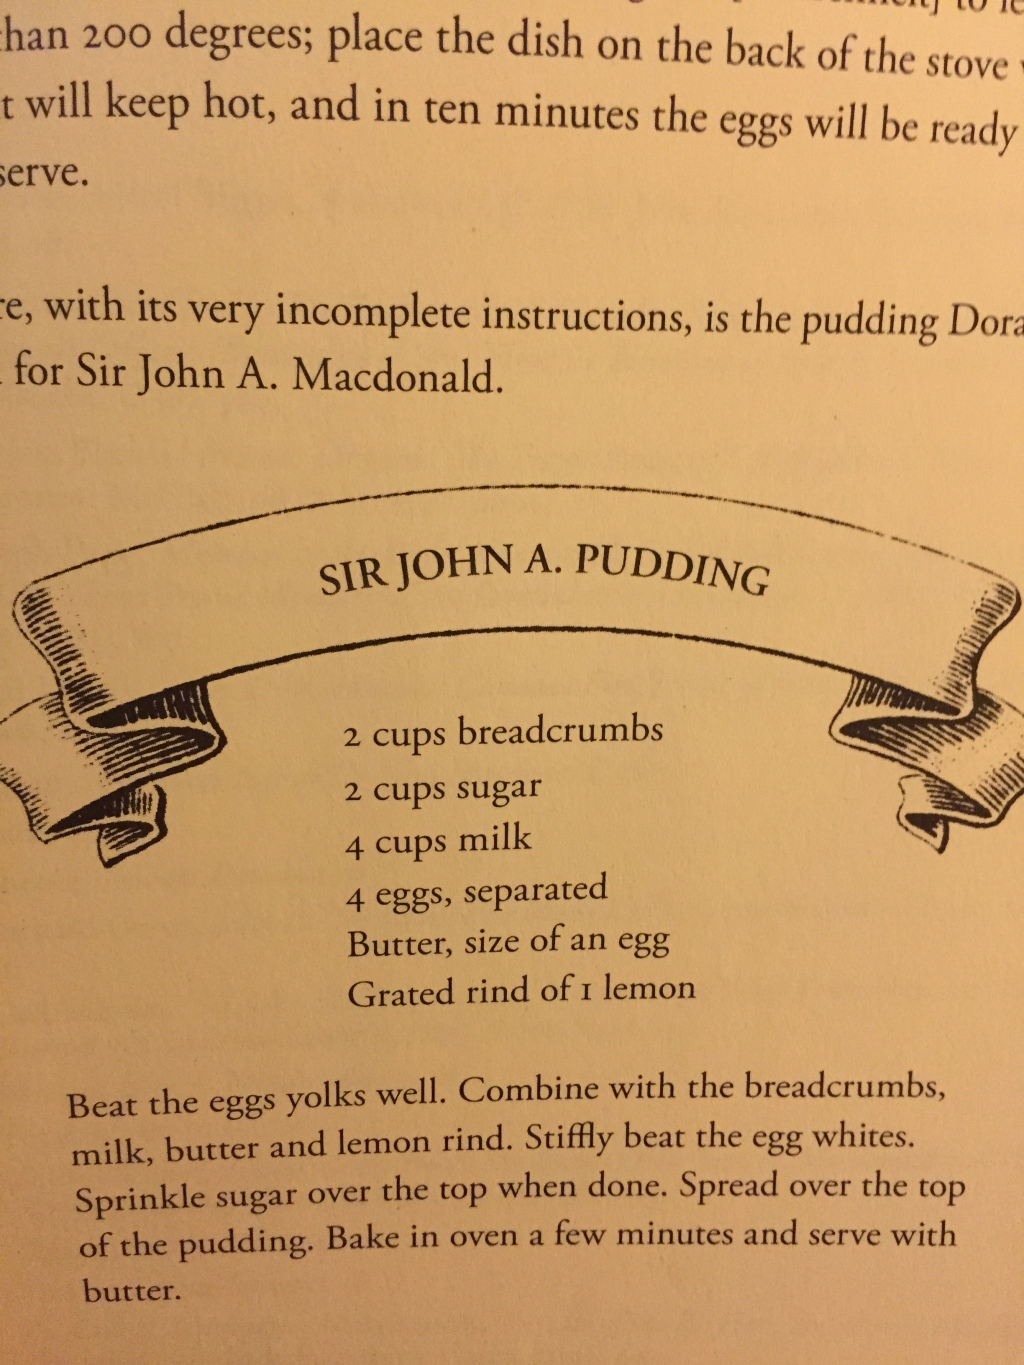 Sir John A. Pudding